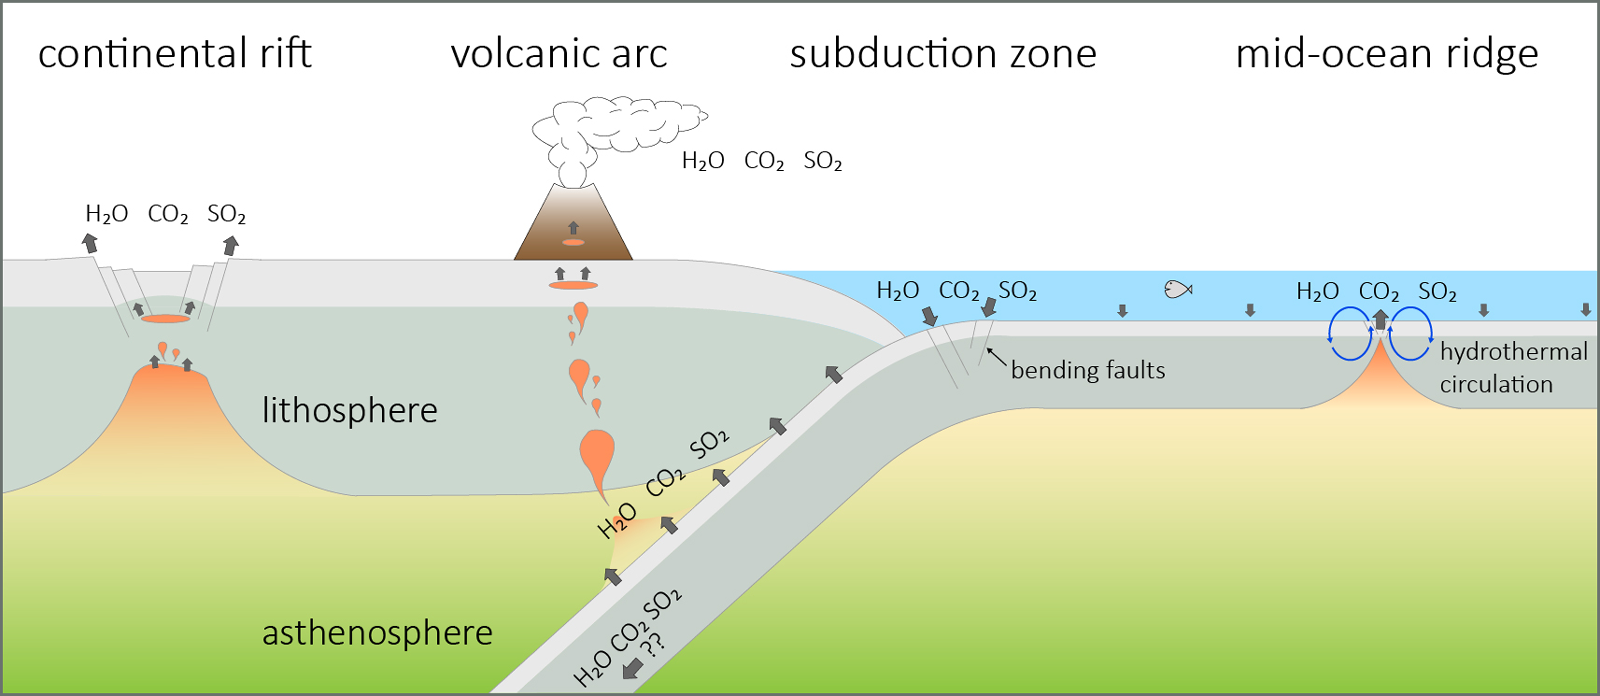 Diagram showing volatile inputs to and outputs from Earth's interior at various tectonic settings